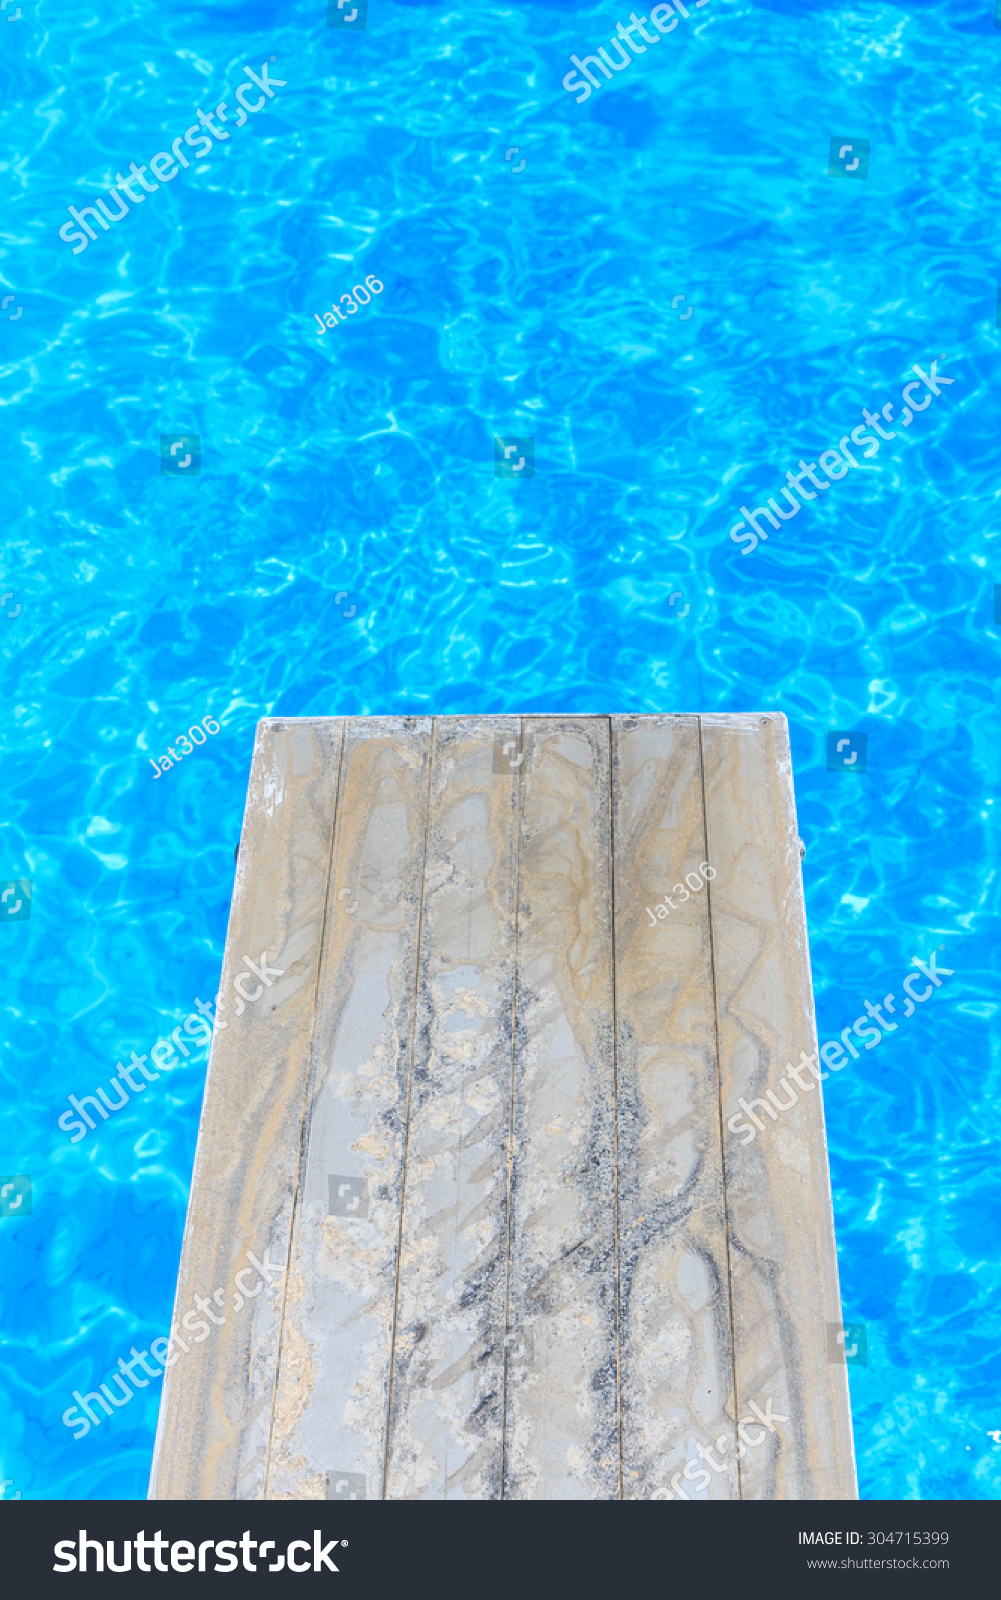 Swimming Pool Old Wooden Diving Board Stock Photo 304715399 Shutterstock